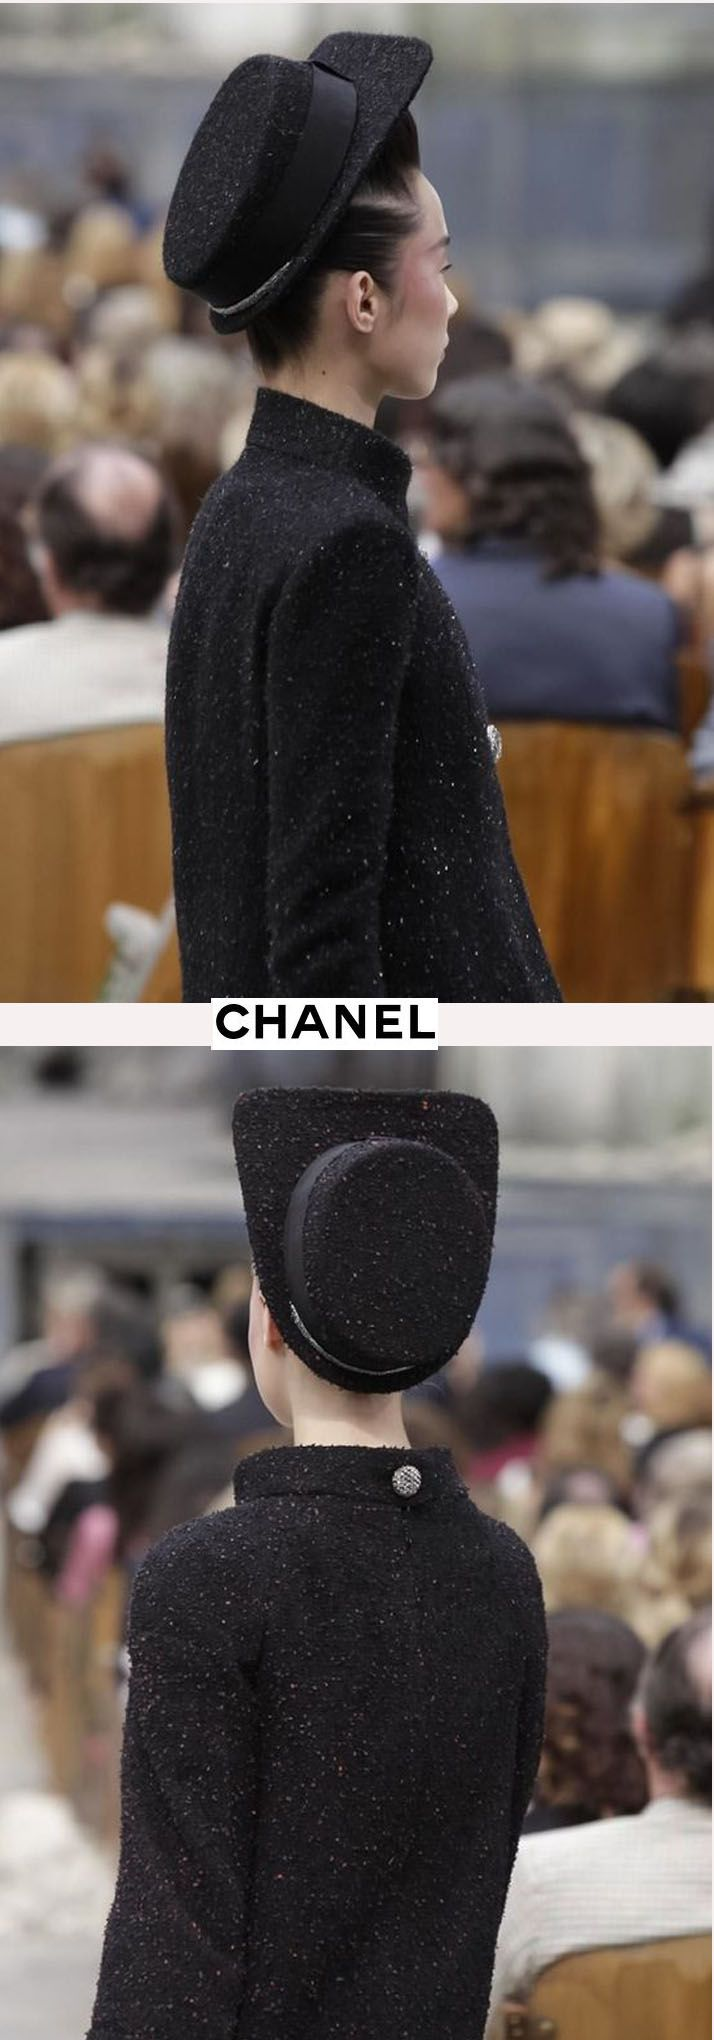 Chanel Couture A/W 2013-14 | Out with the old Pill Box hat in with Karl Lagerfeld's design revelation of the new...